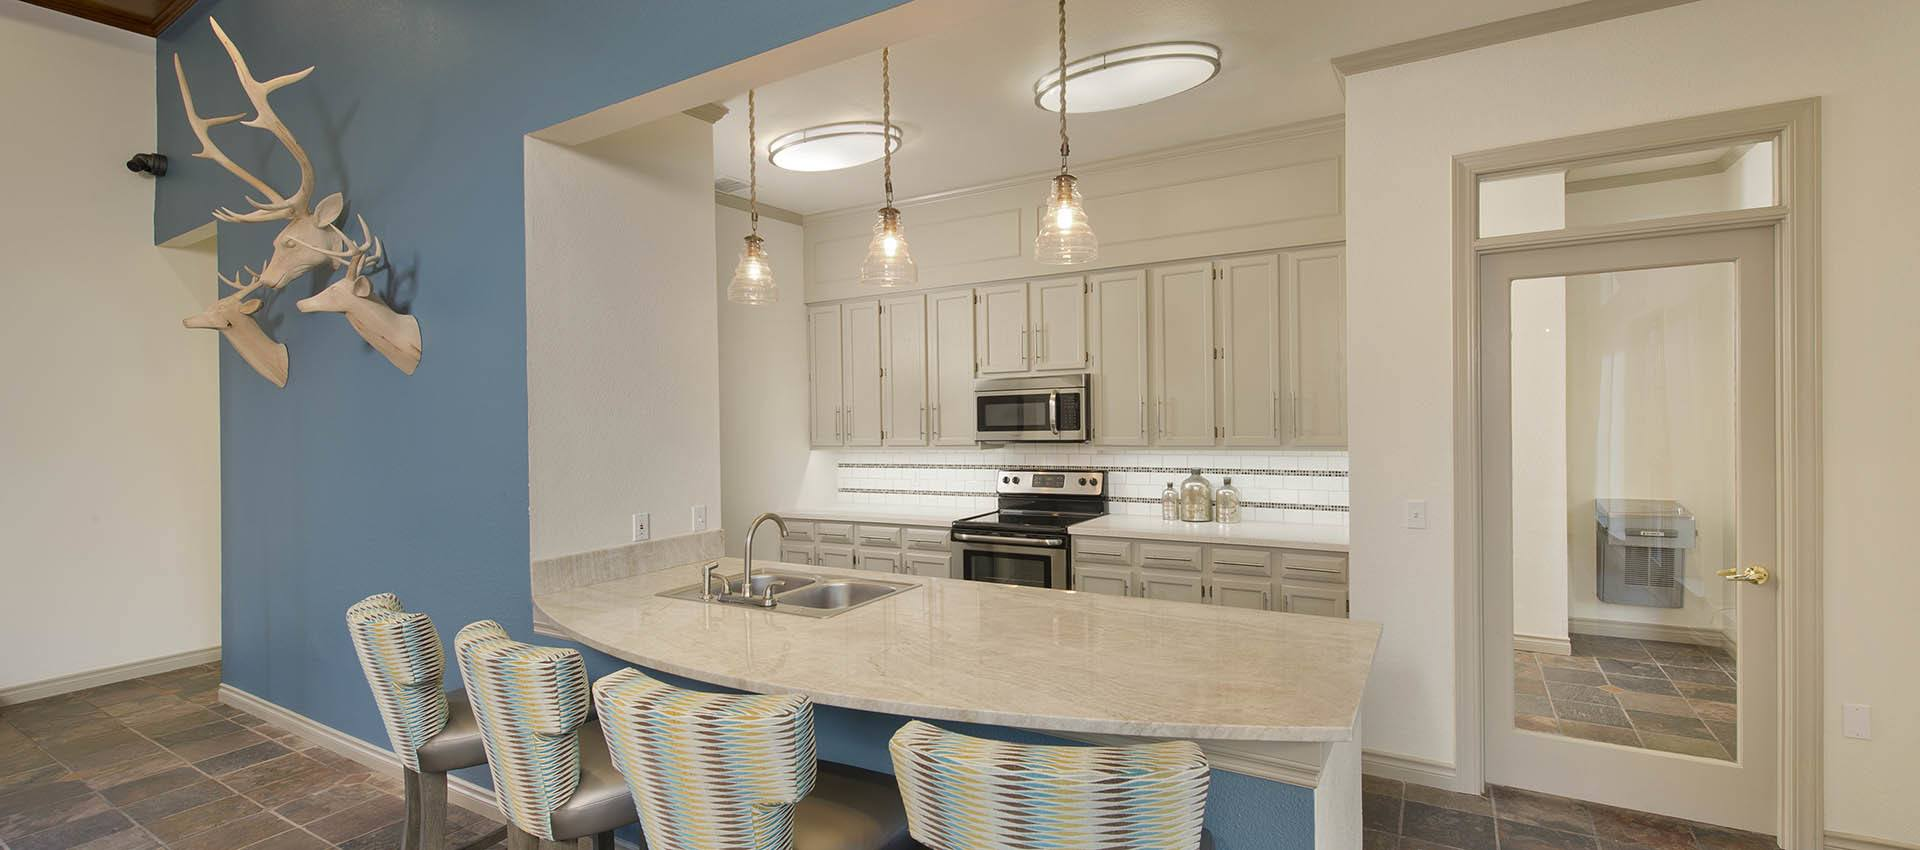 Gathering Kitchen at Cortland Village Apartment Homes in Hillsboro